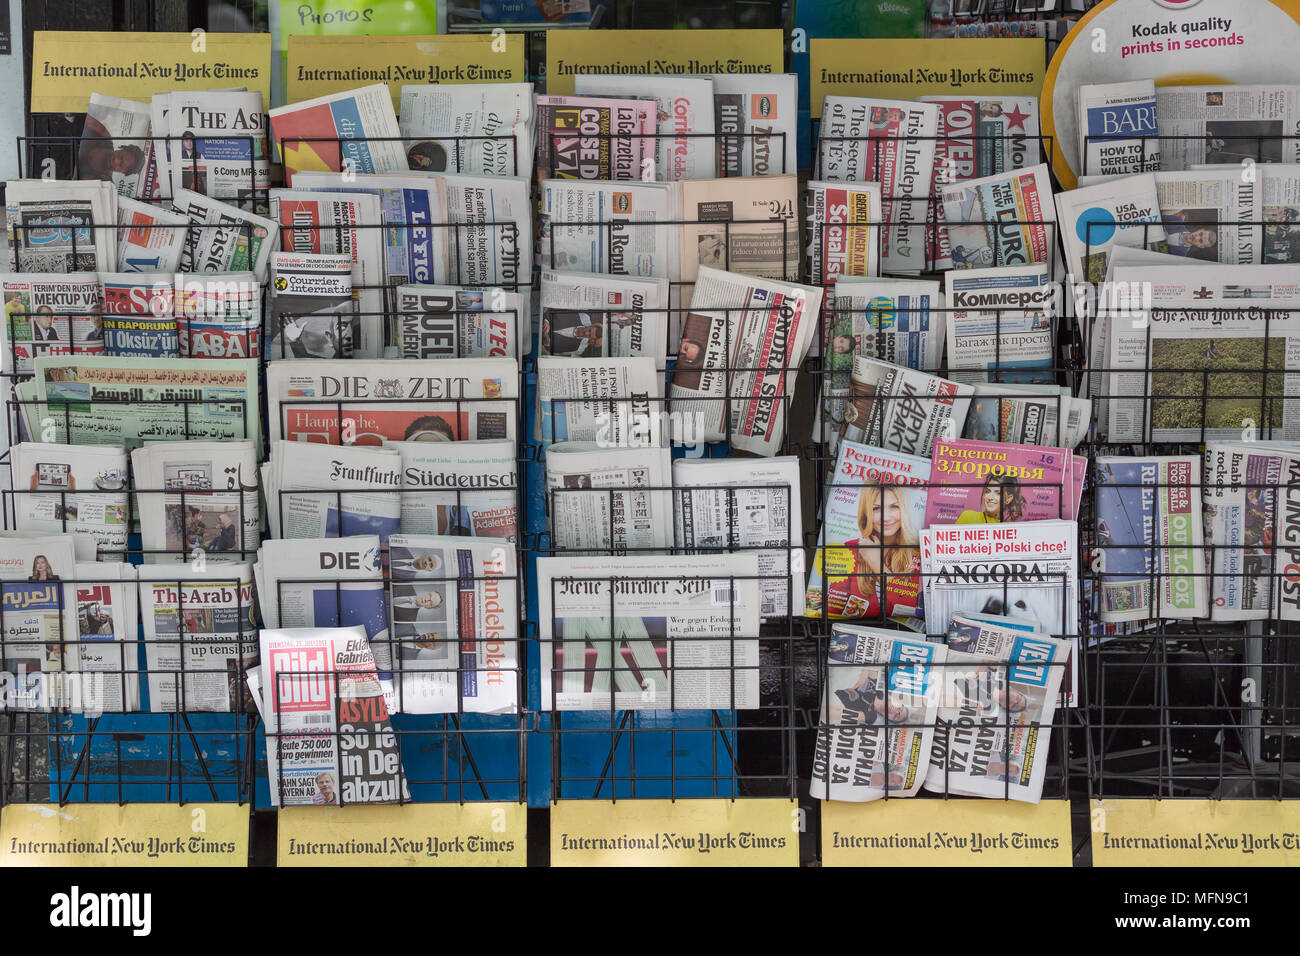 Newspapers in Kensington - Stock Image